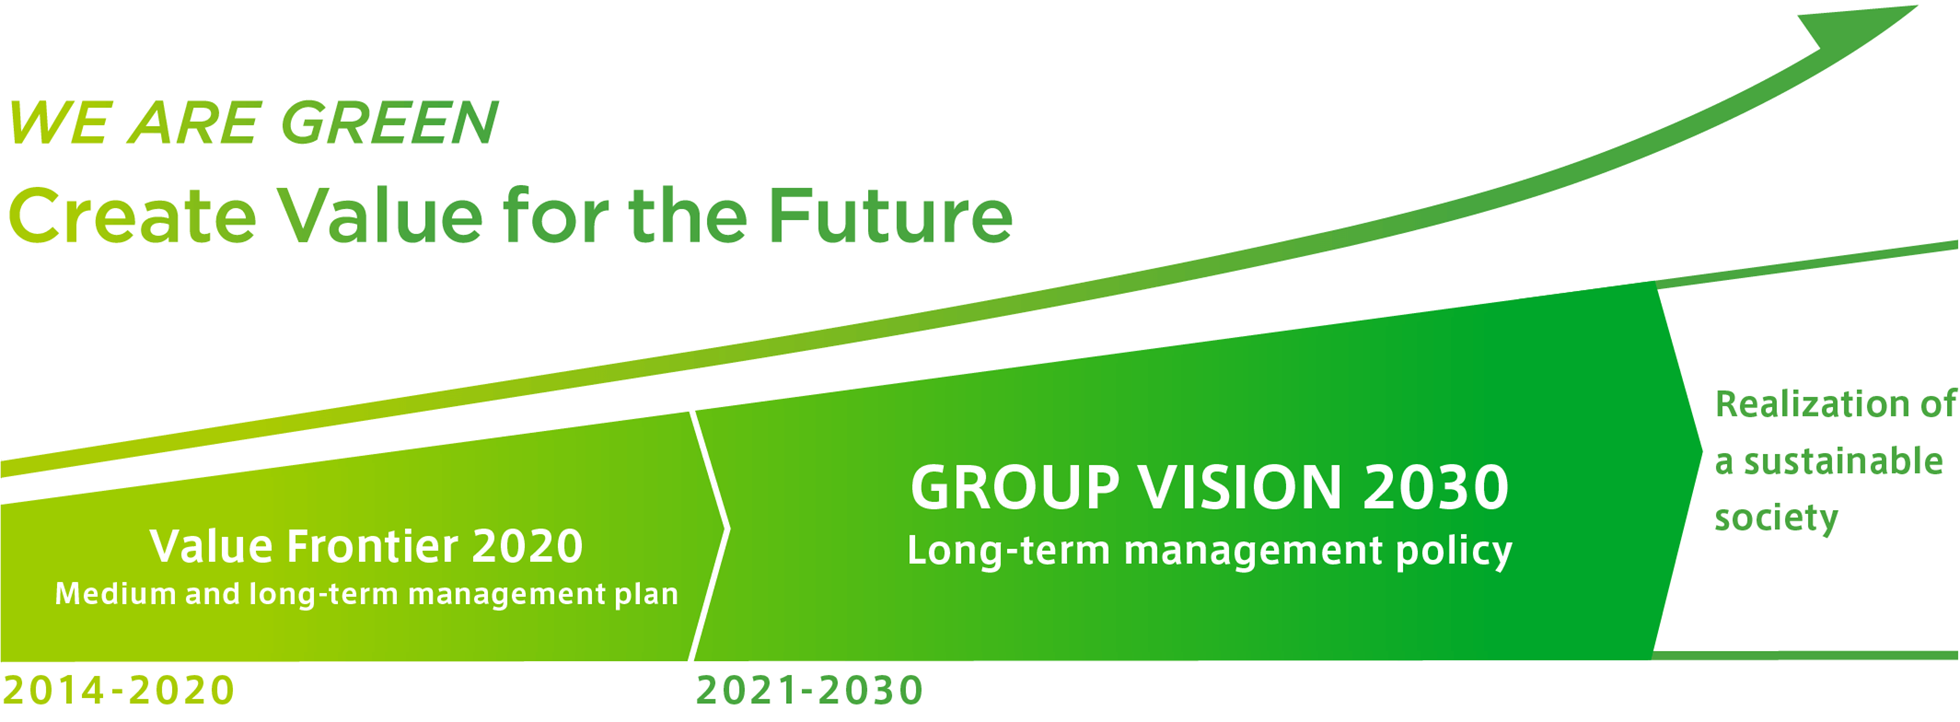 Mid-/Long-Term Management Plan (Value Frontier 2020)